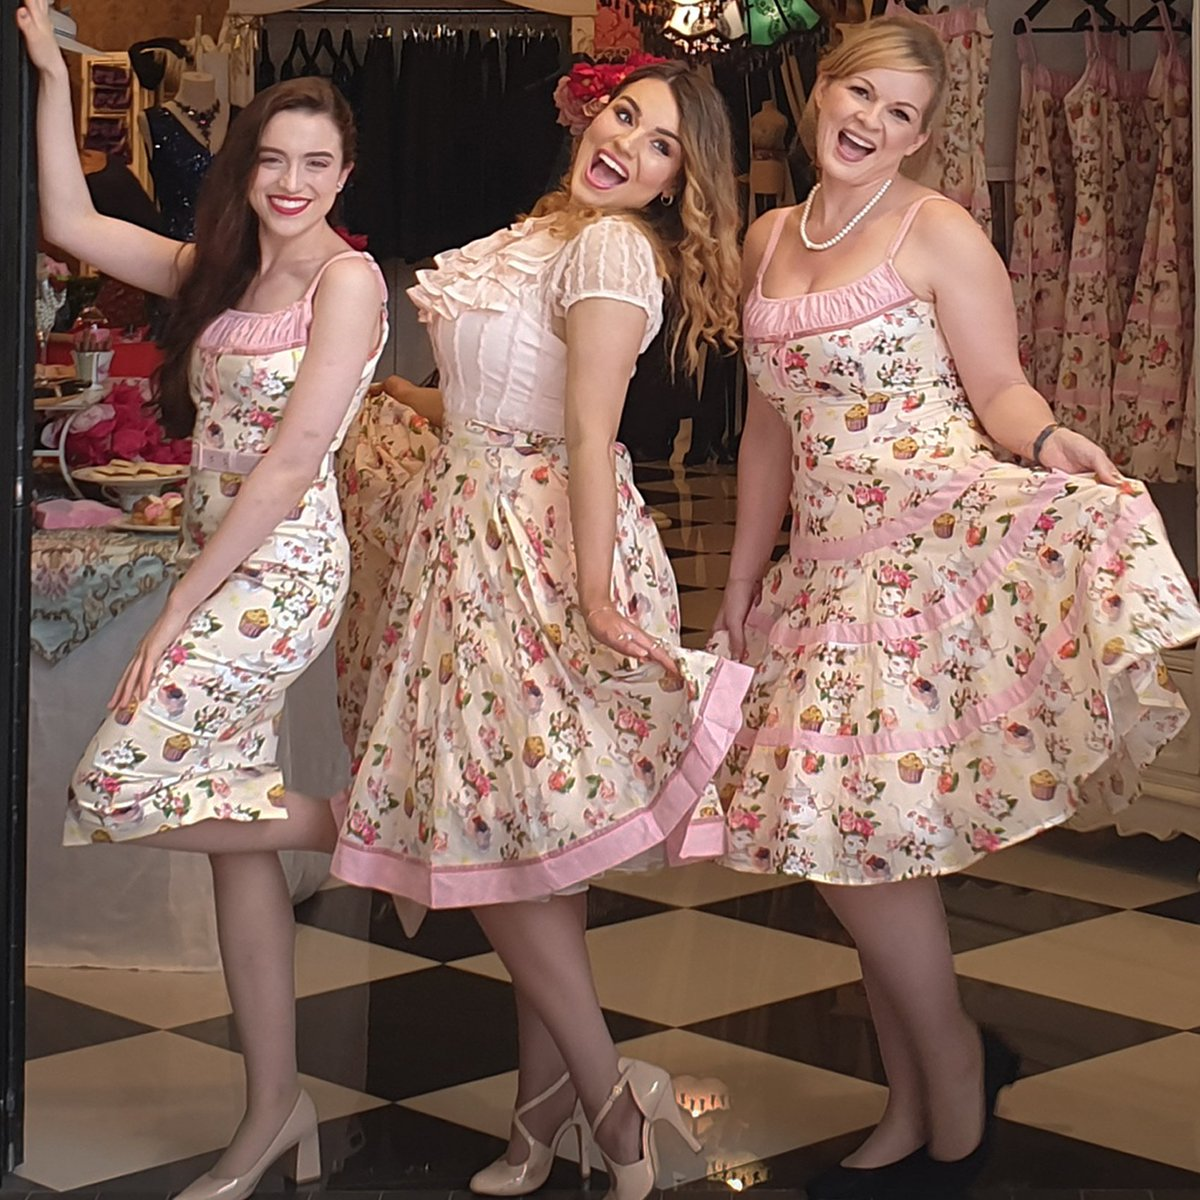 Kitten D Amour On Twitter The Amazing Team At Kitten D Amour Westfield Chatswood Beauty Brains And The Power To Style Impeccably Shop My Little Teapot Here Https T Co Kt5wjboabd Https T Co Fpb2l6tcsb